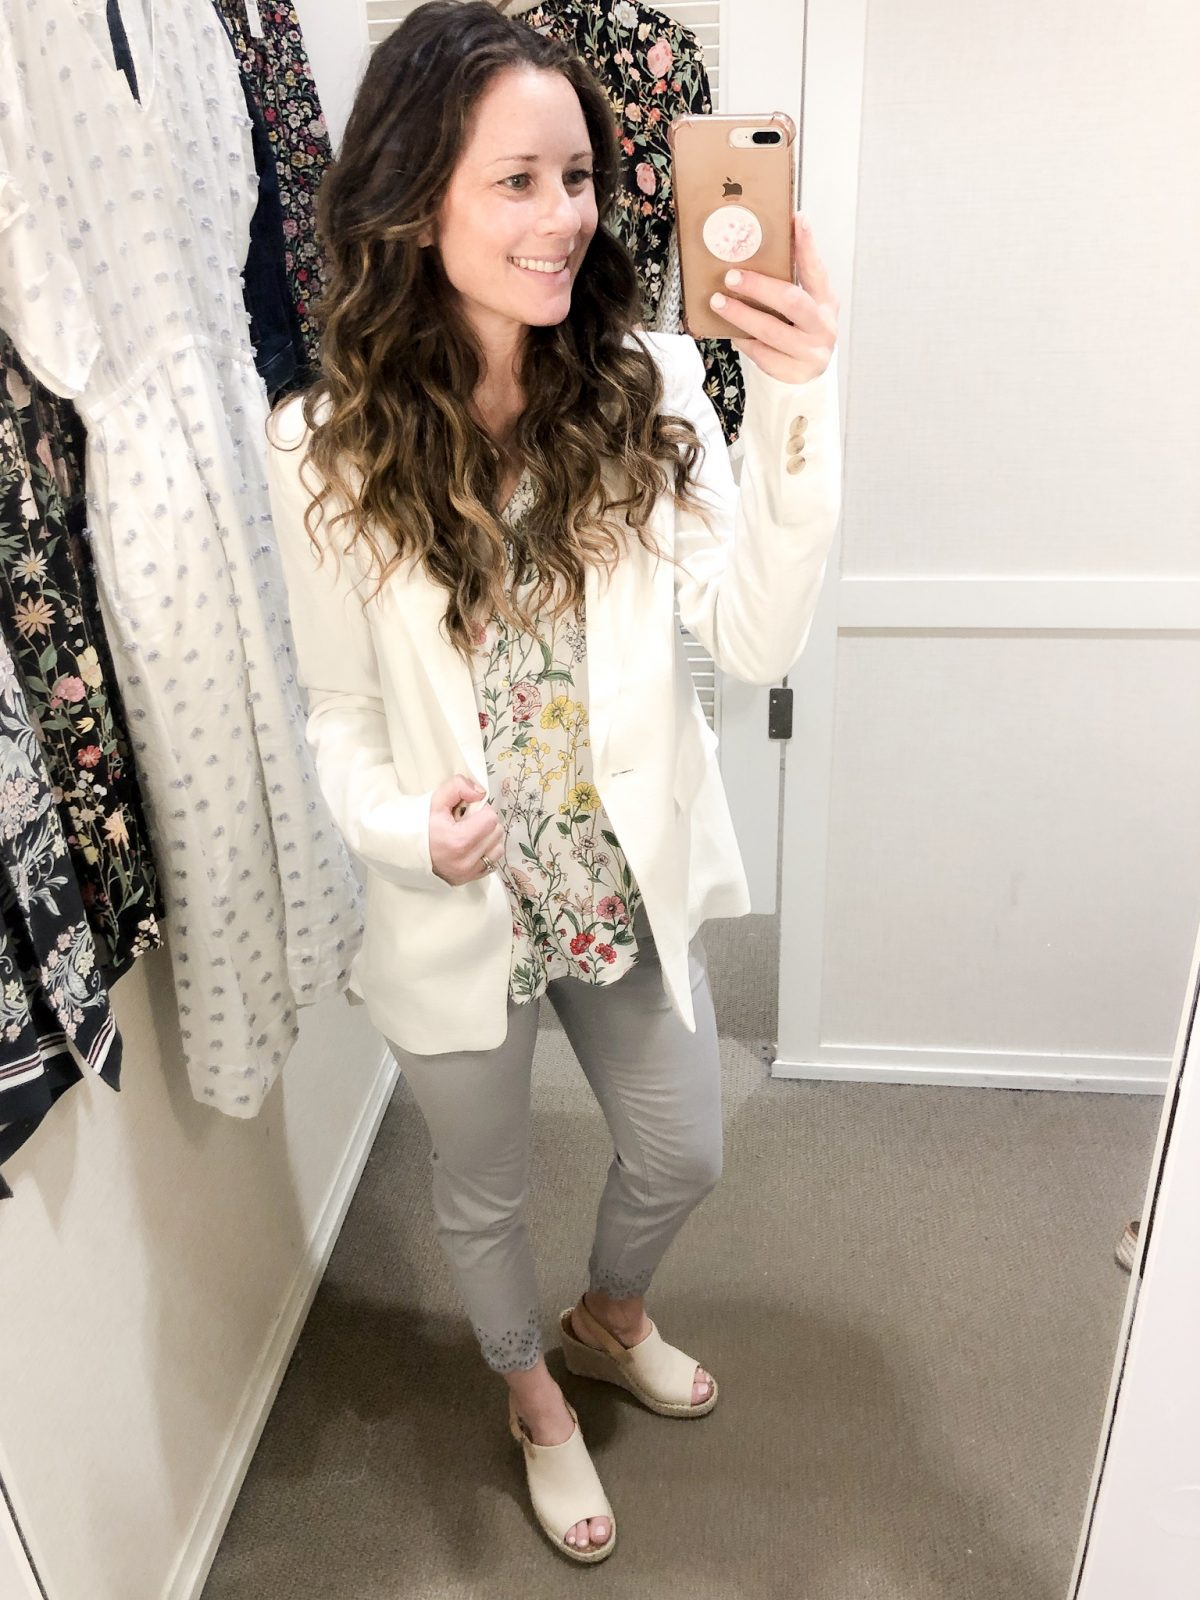 White Blazer over Floral Long Sleeve Top and Gray Cropped Pants with Eyelet Hem on Woman at LOFT Confessions of a Northern Belle